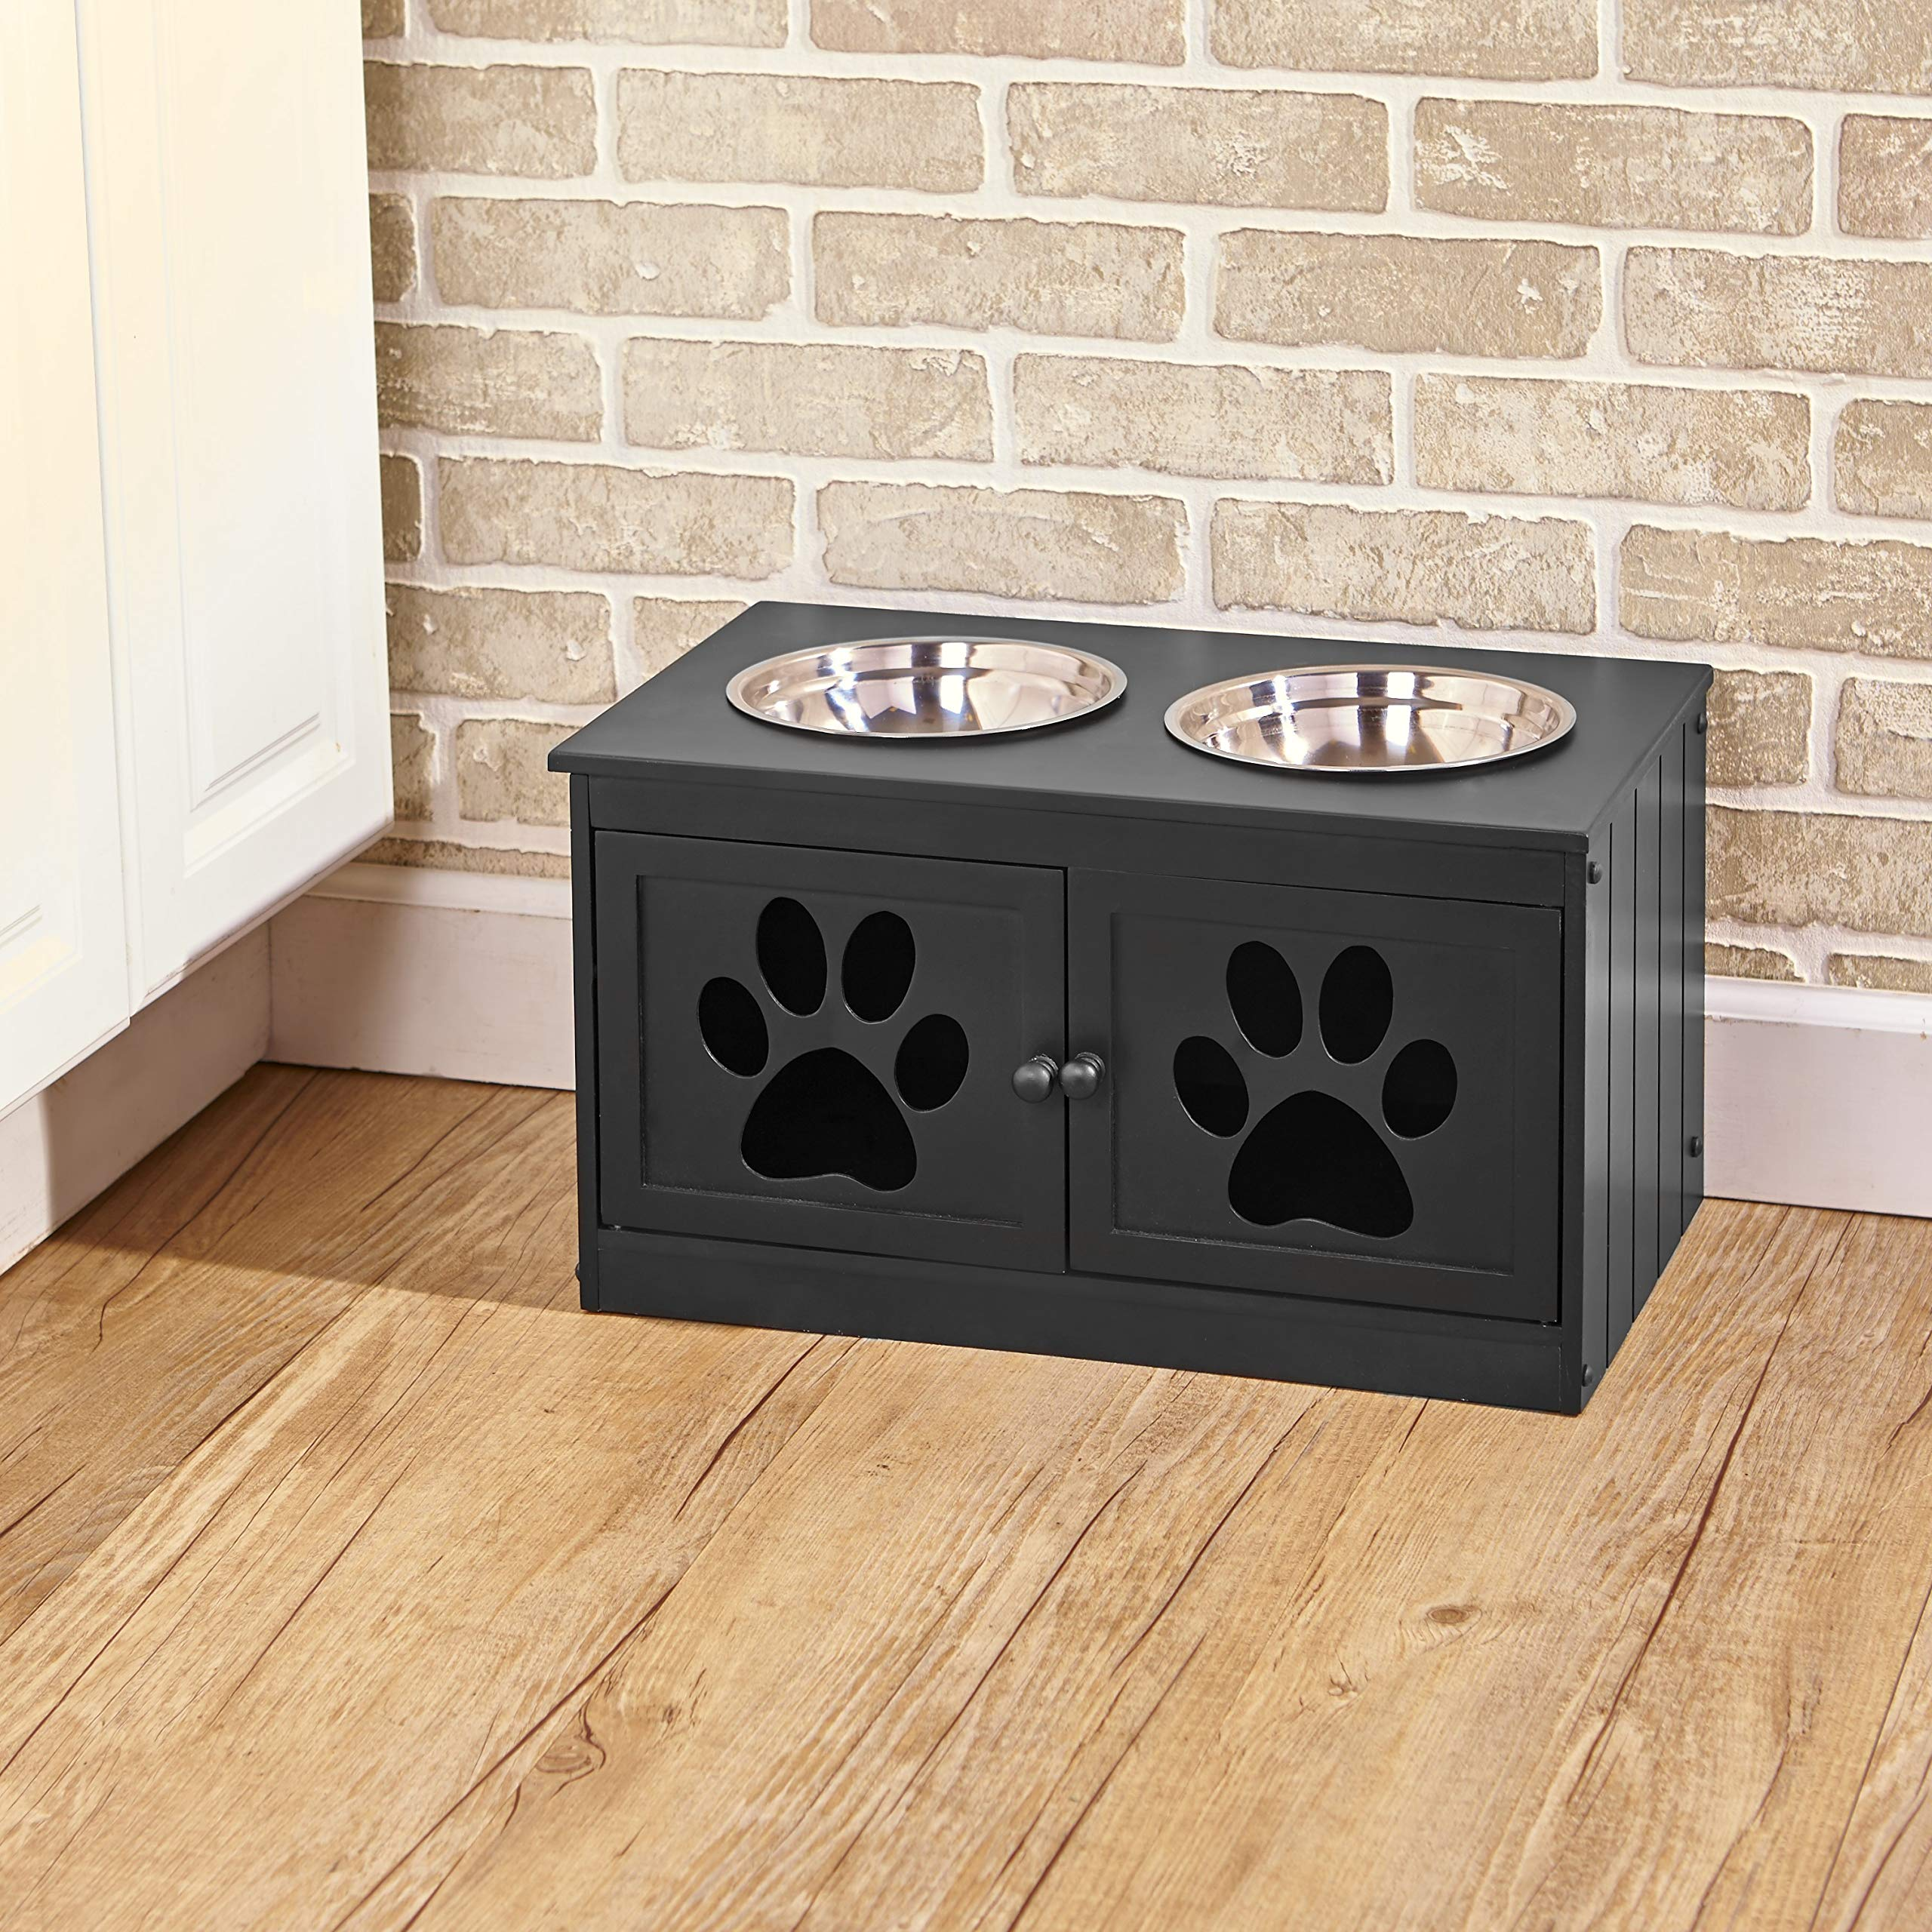 Ltd Commodities LLC Pet Feeding Cabinet with 2 Elevated Bowls and Storage Beneath - Black by Ltd Commodities LLC